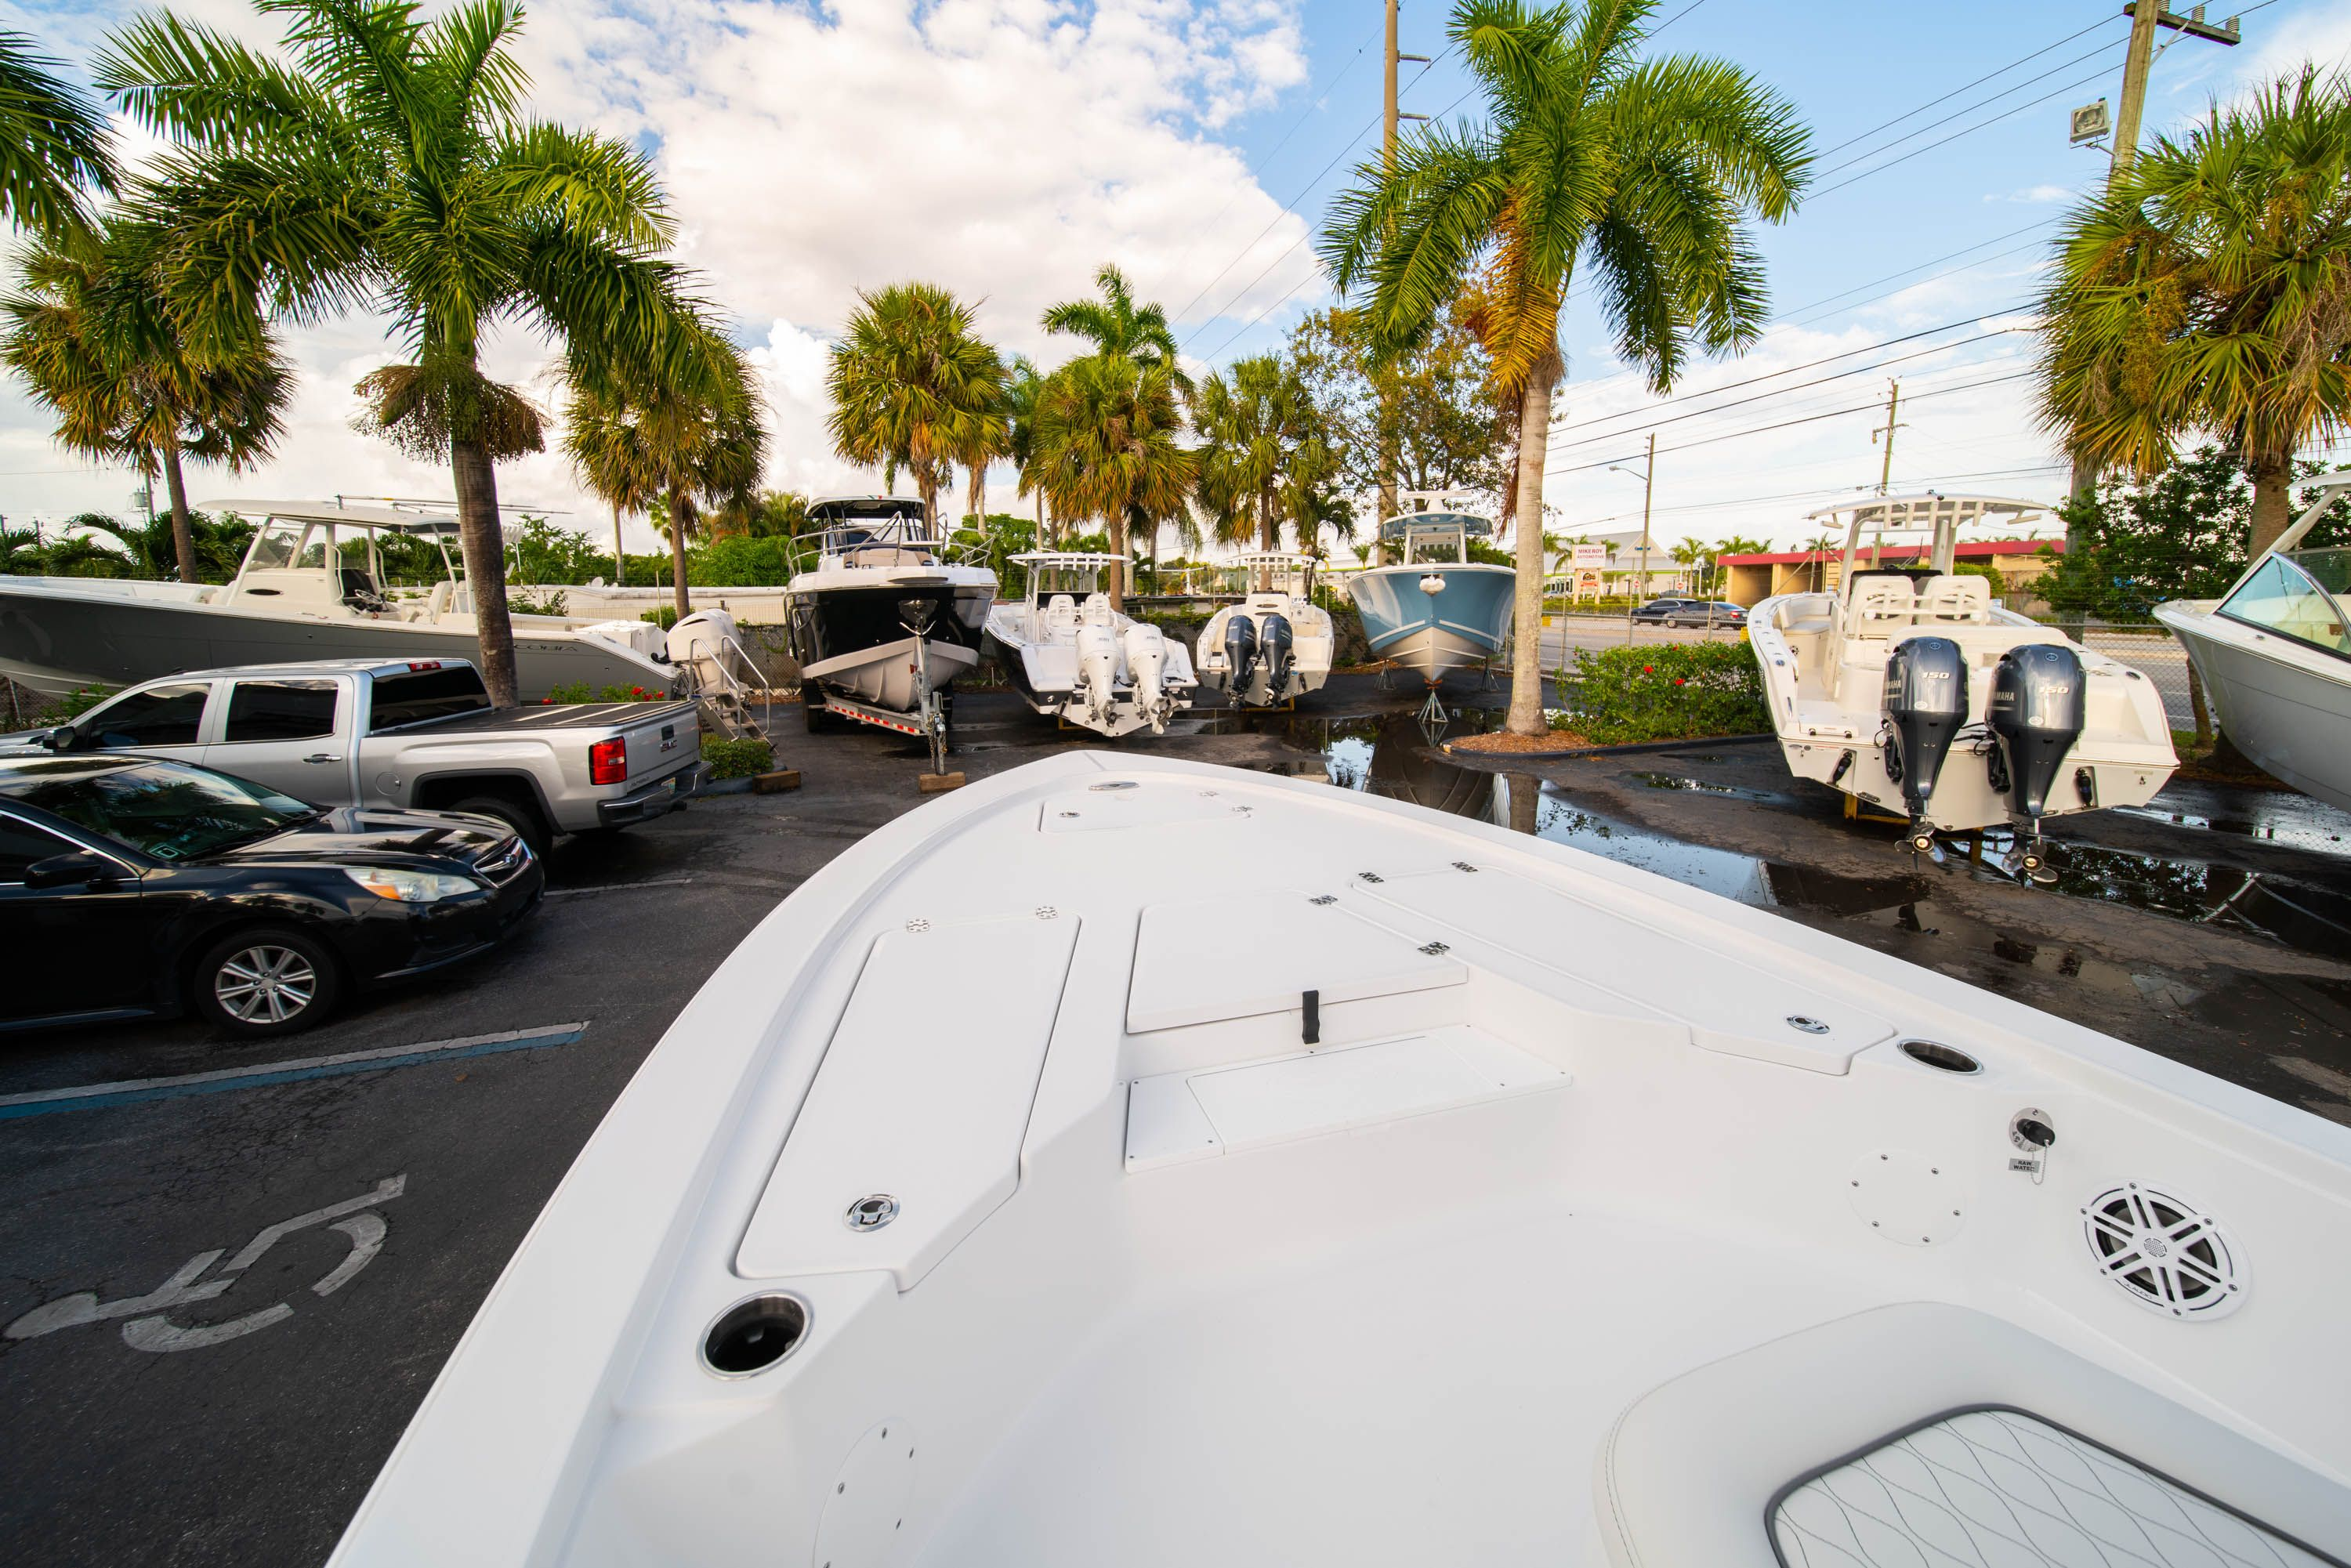 Thumbnail 29 for New 2020 Sportsman Tournament 214 Bay Boat boat for sale in West Palm Beach, FL